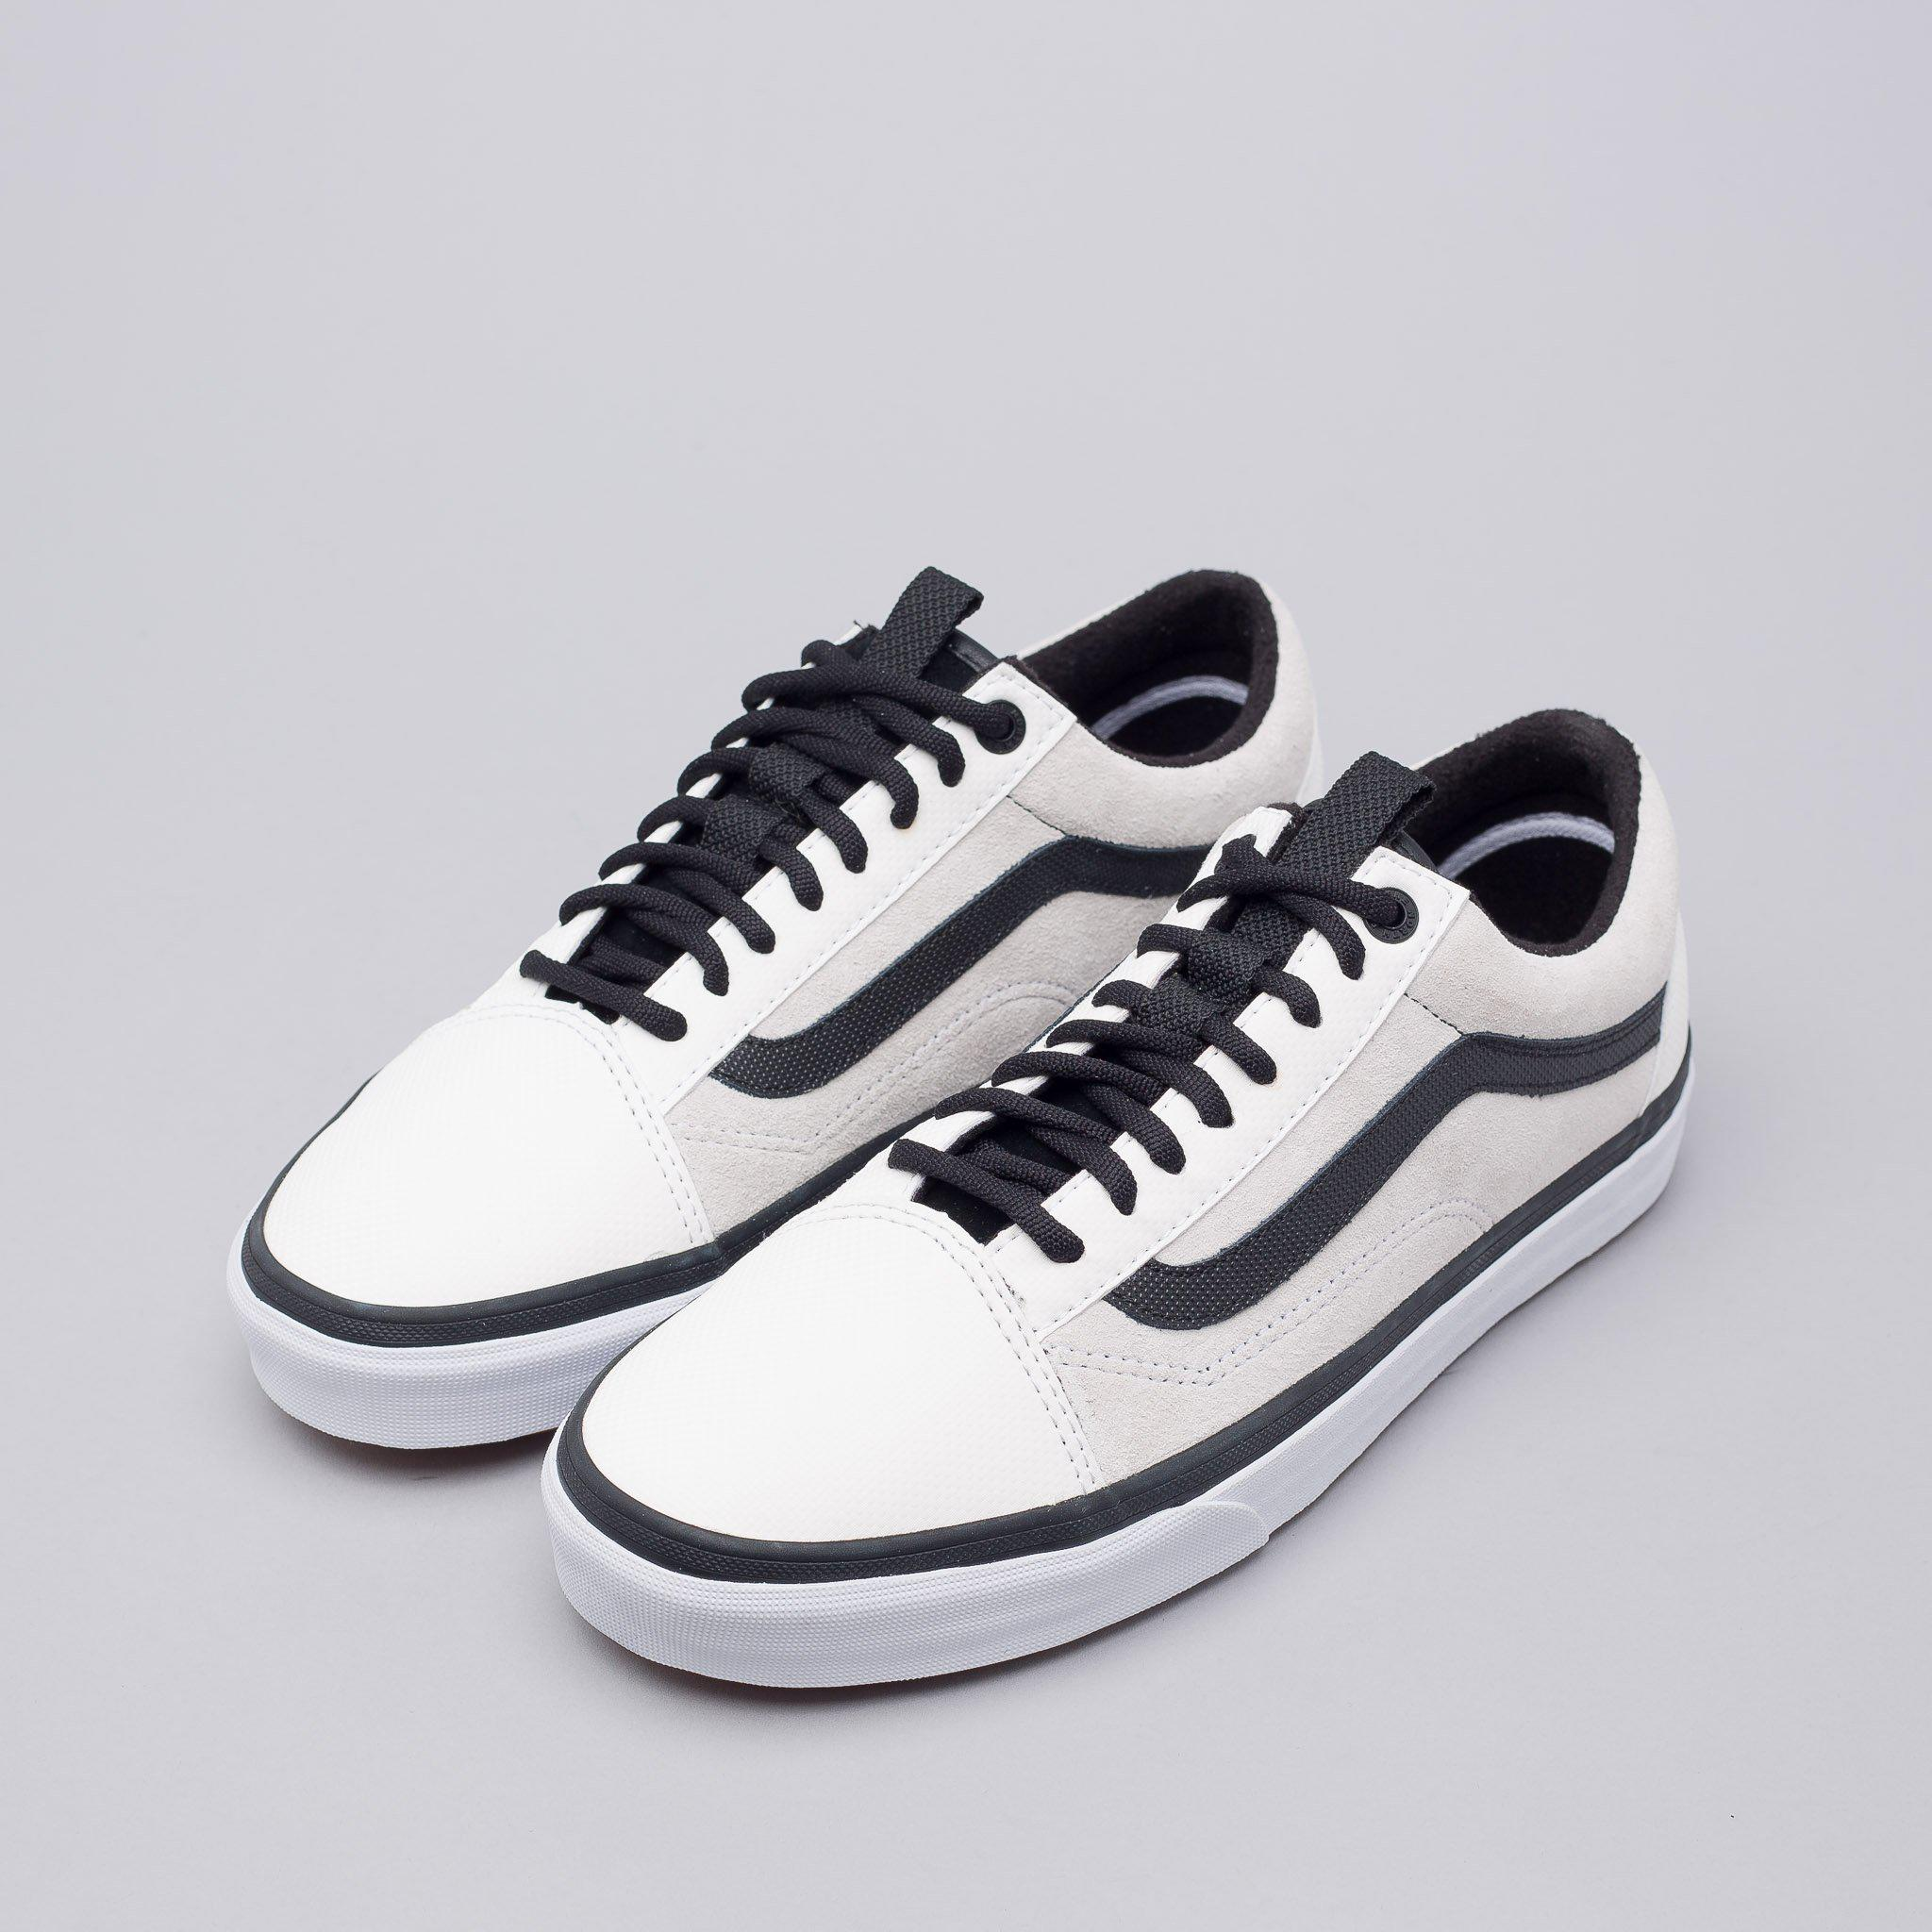 Lyst - Vans X The North Face Old Skool Mte Dx In True White in White ... ff4af93c0